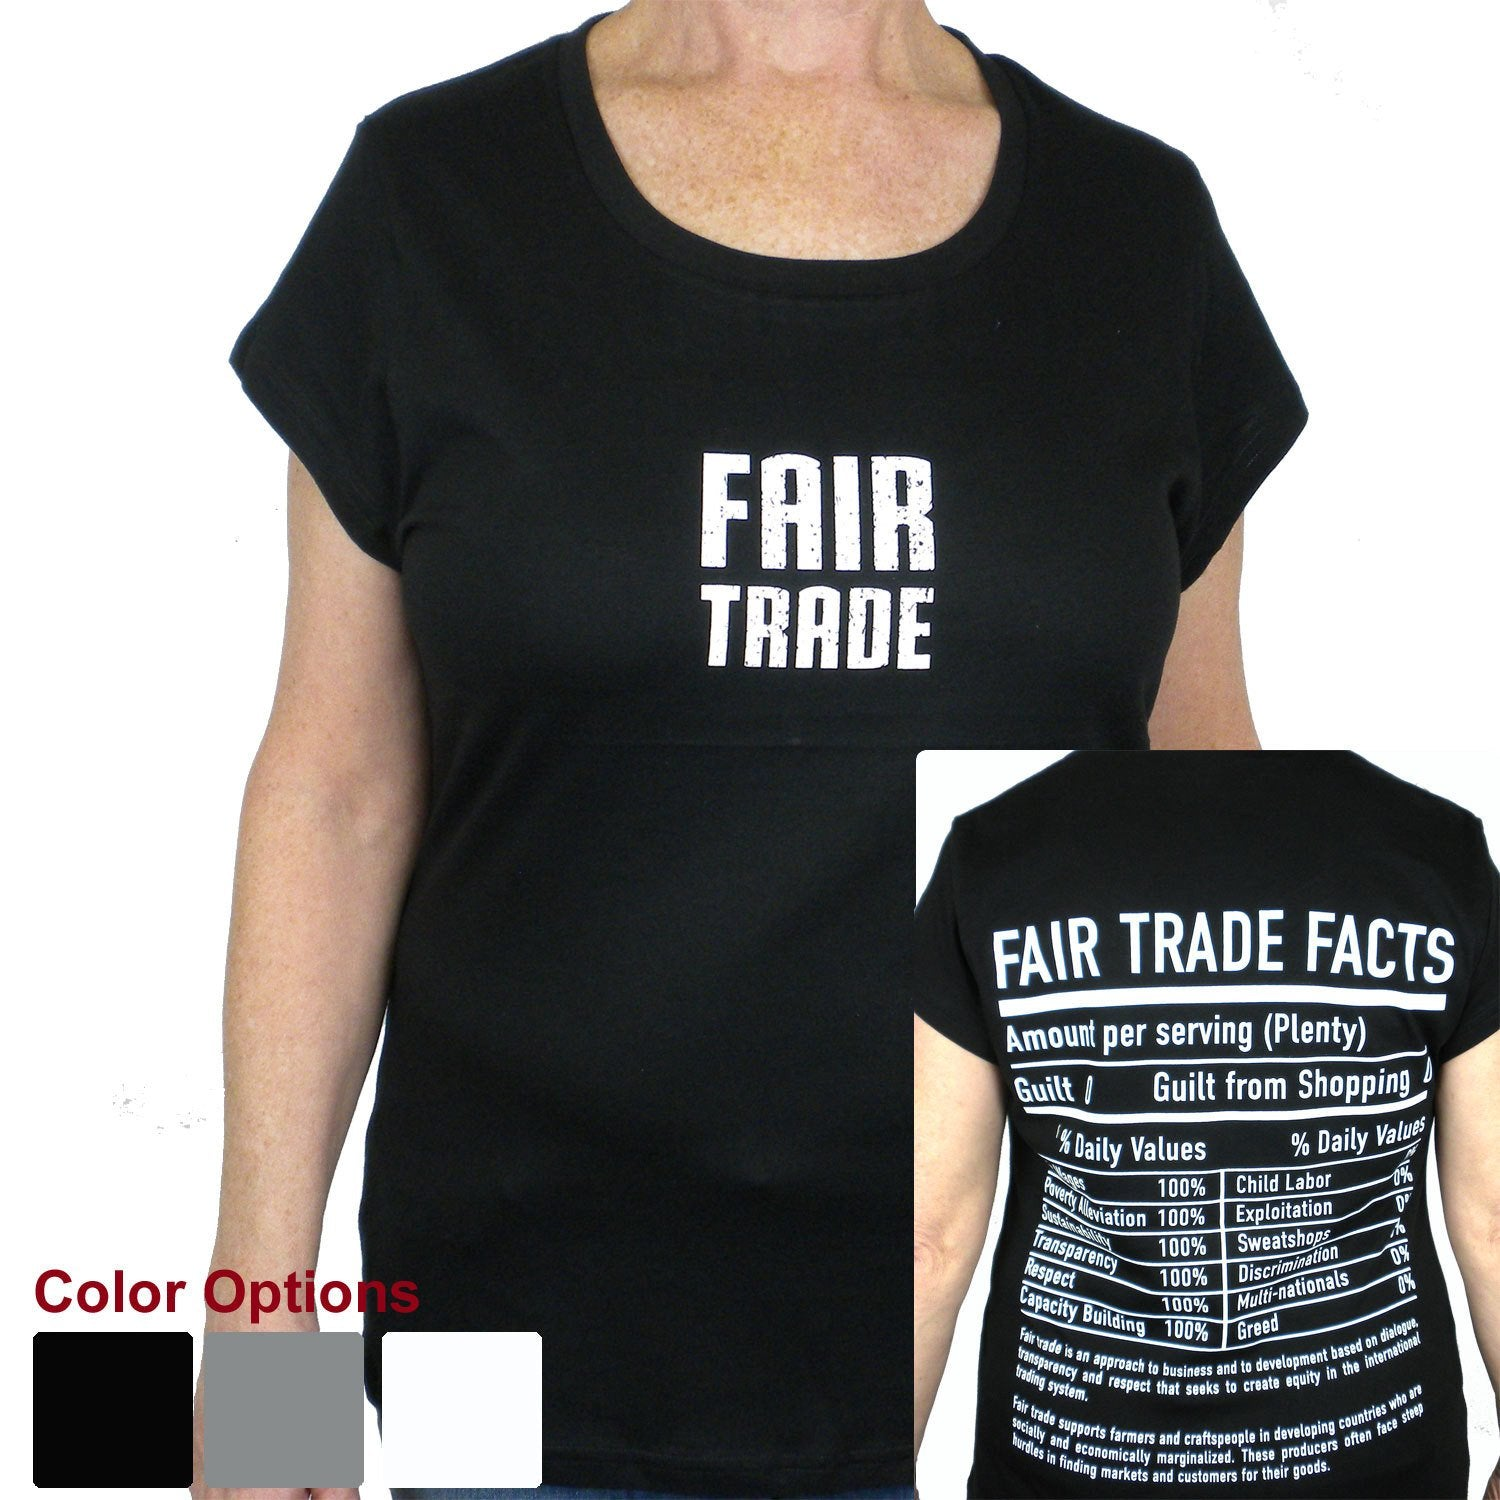 Black Tee Shirt Small FT Front - FT Facts on Back - Medium